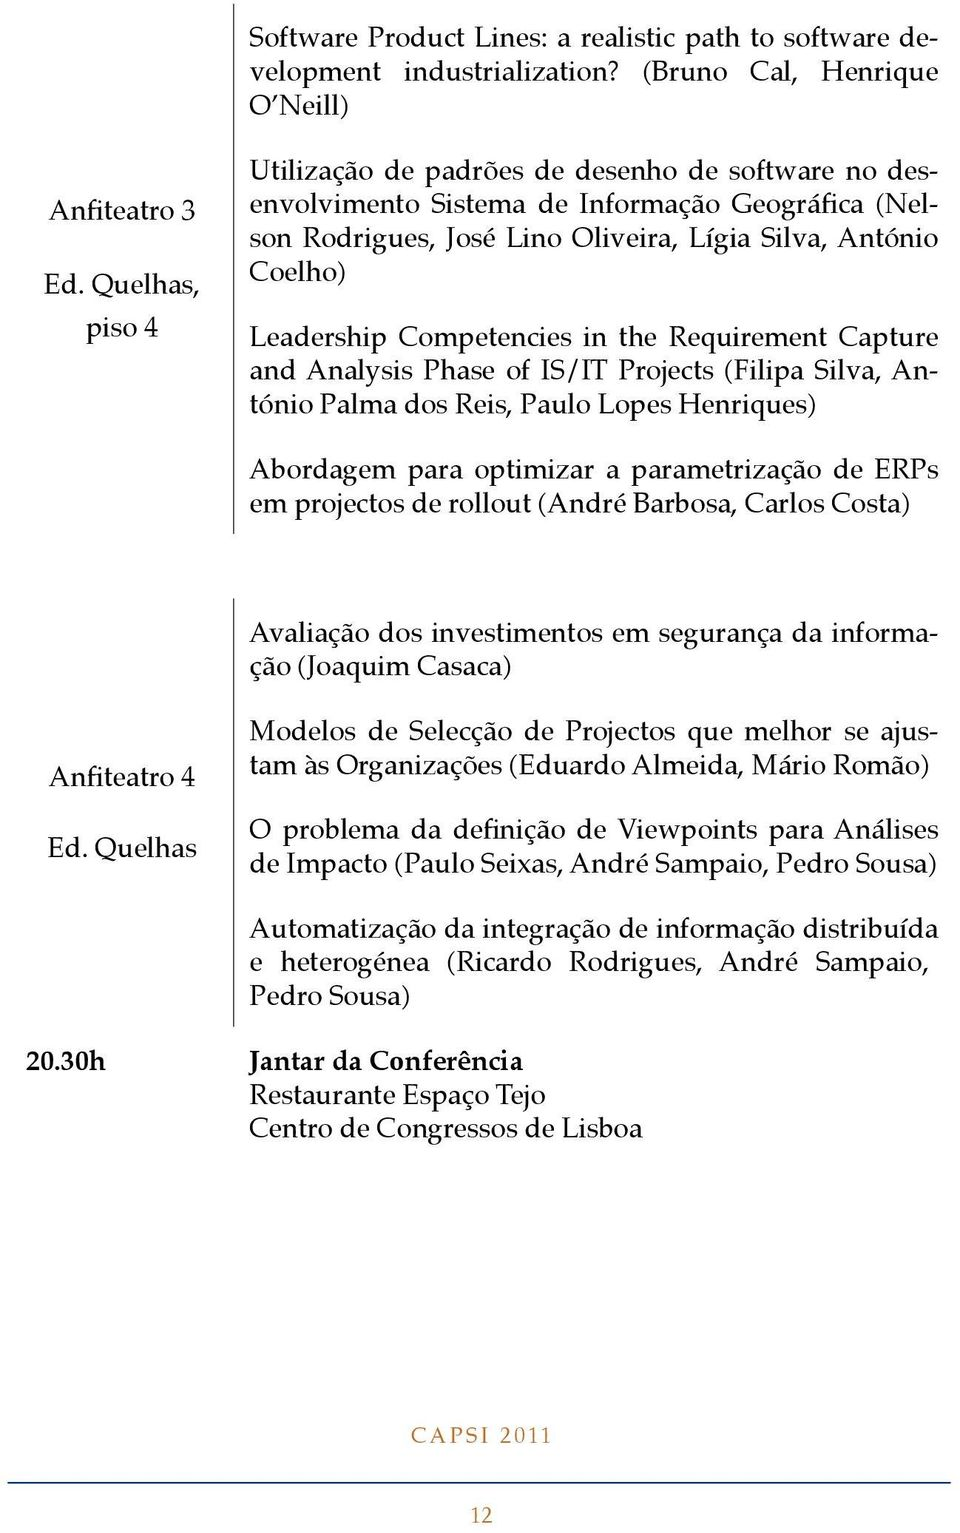 Competencies in the Requirement Capture and Analysis Phase of IS/IT Projects (Filipa Silva, António Palma dos Reis, Paulo Lopes Henriques) Abordagem para optimizar a parametrização de ERPs em